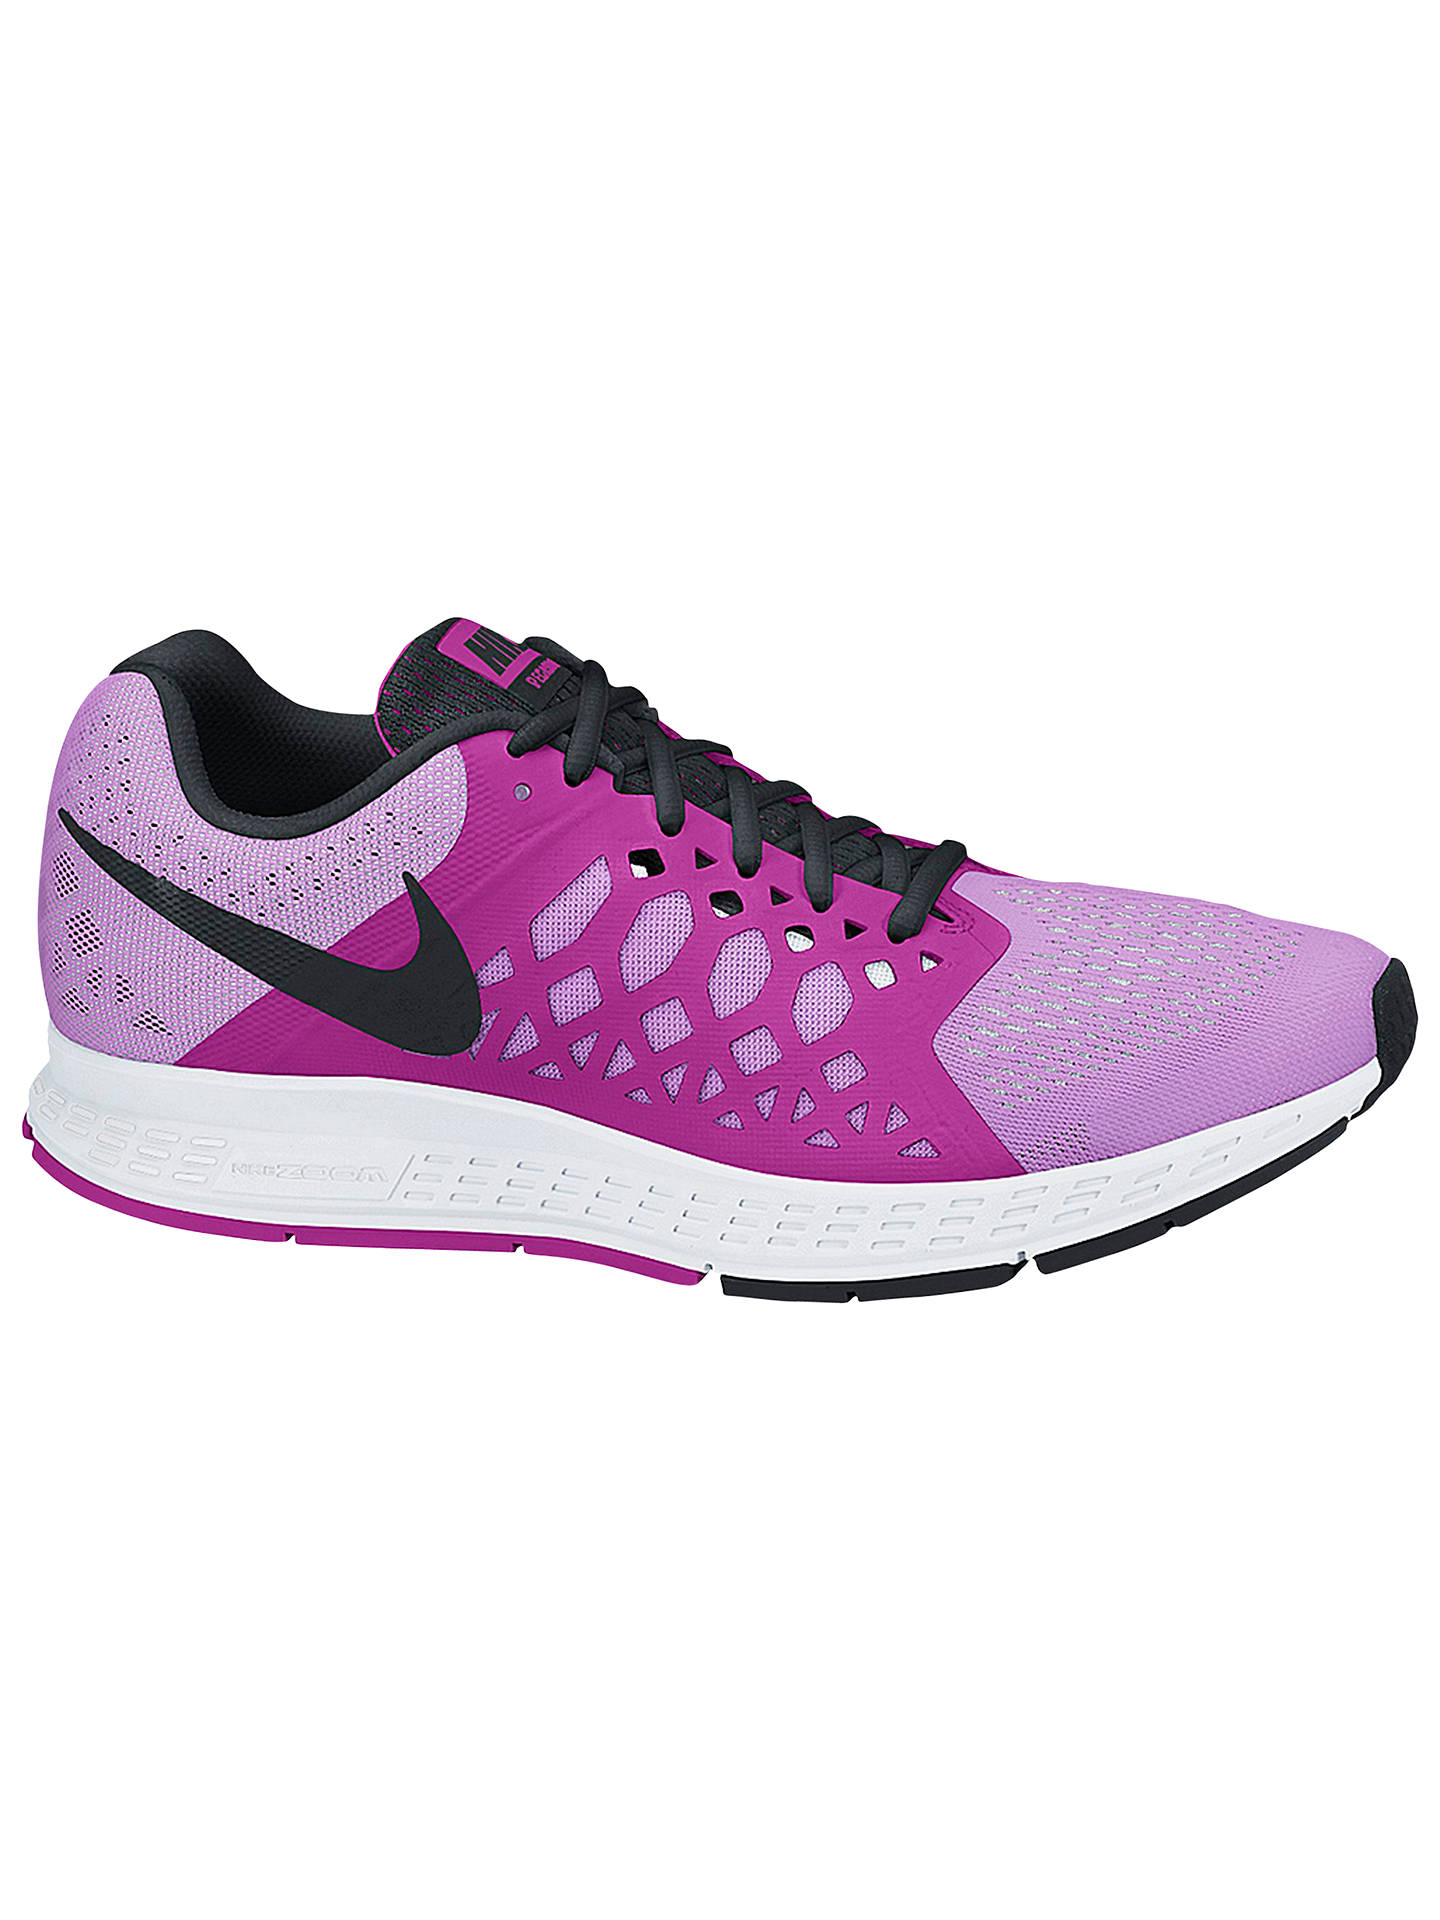 the latest f7466 fa67b Buy Nike Air Zoom Pegasus 31 Women s Running Shoes, Fuchsia Glow Black, 4  ...